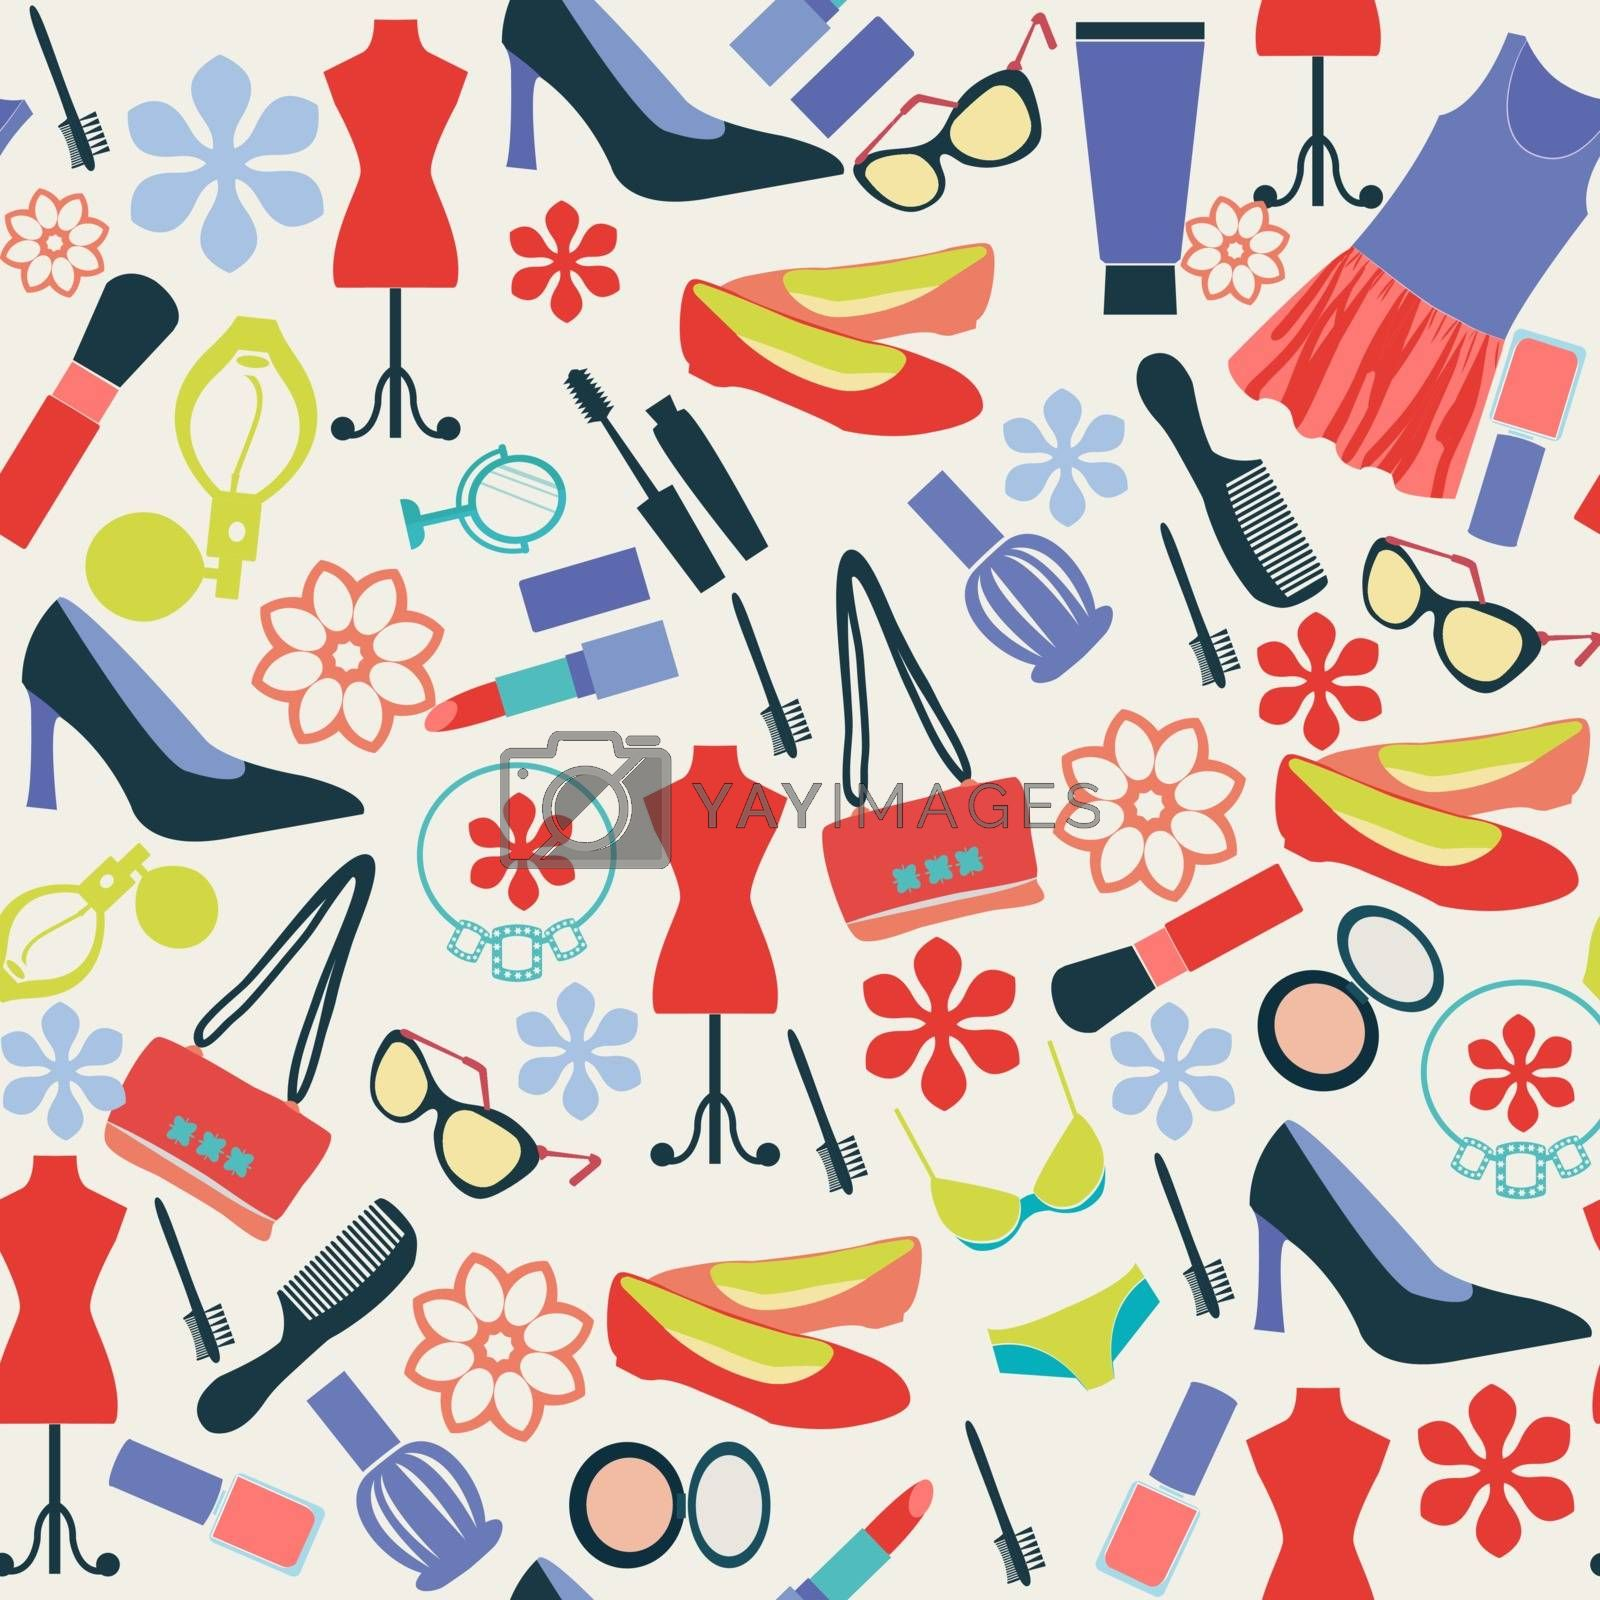 Vector Fashion background cloth and accessories, beauty in  Flat style - Illustration